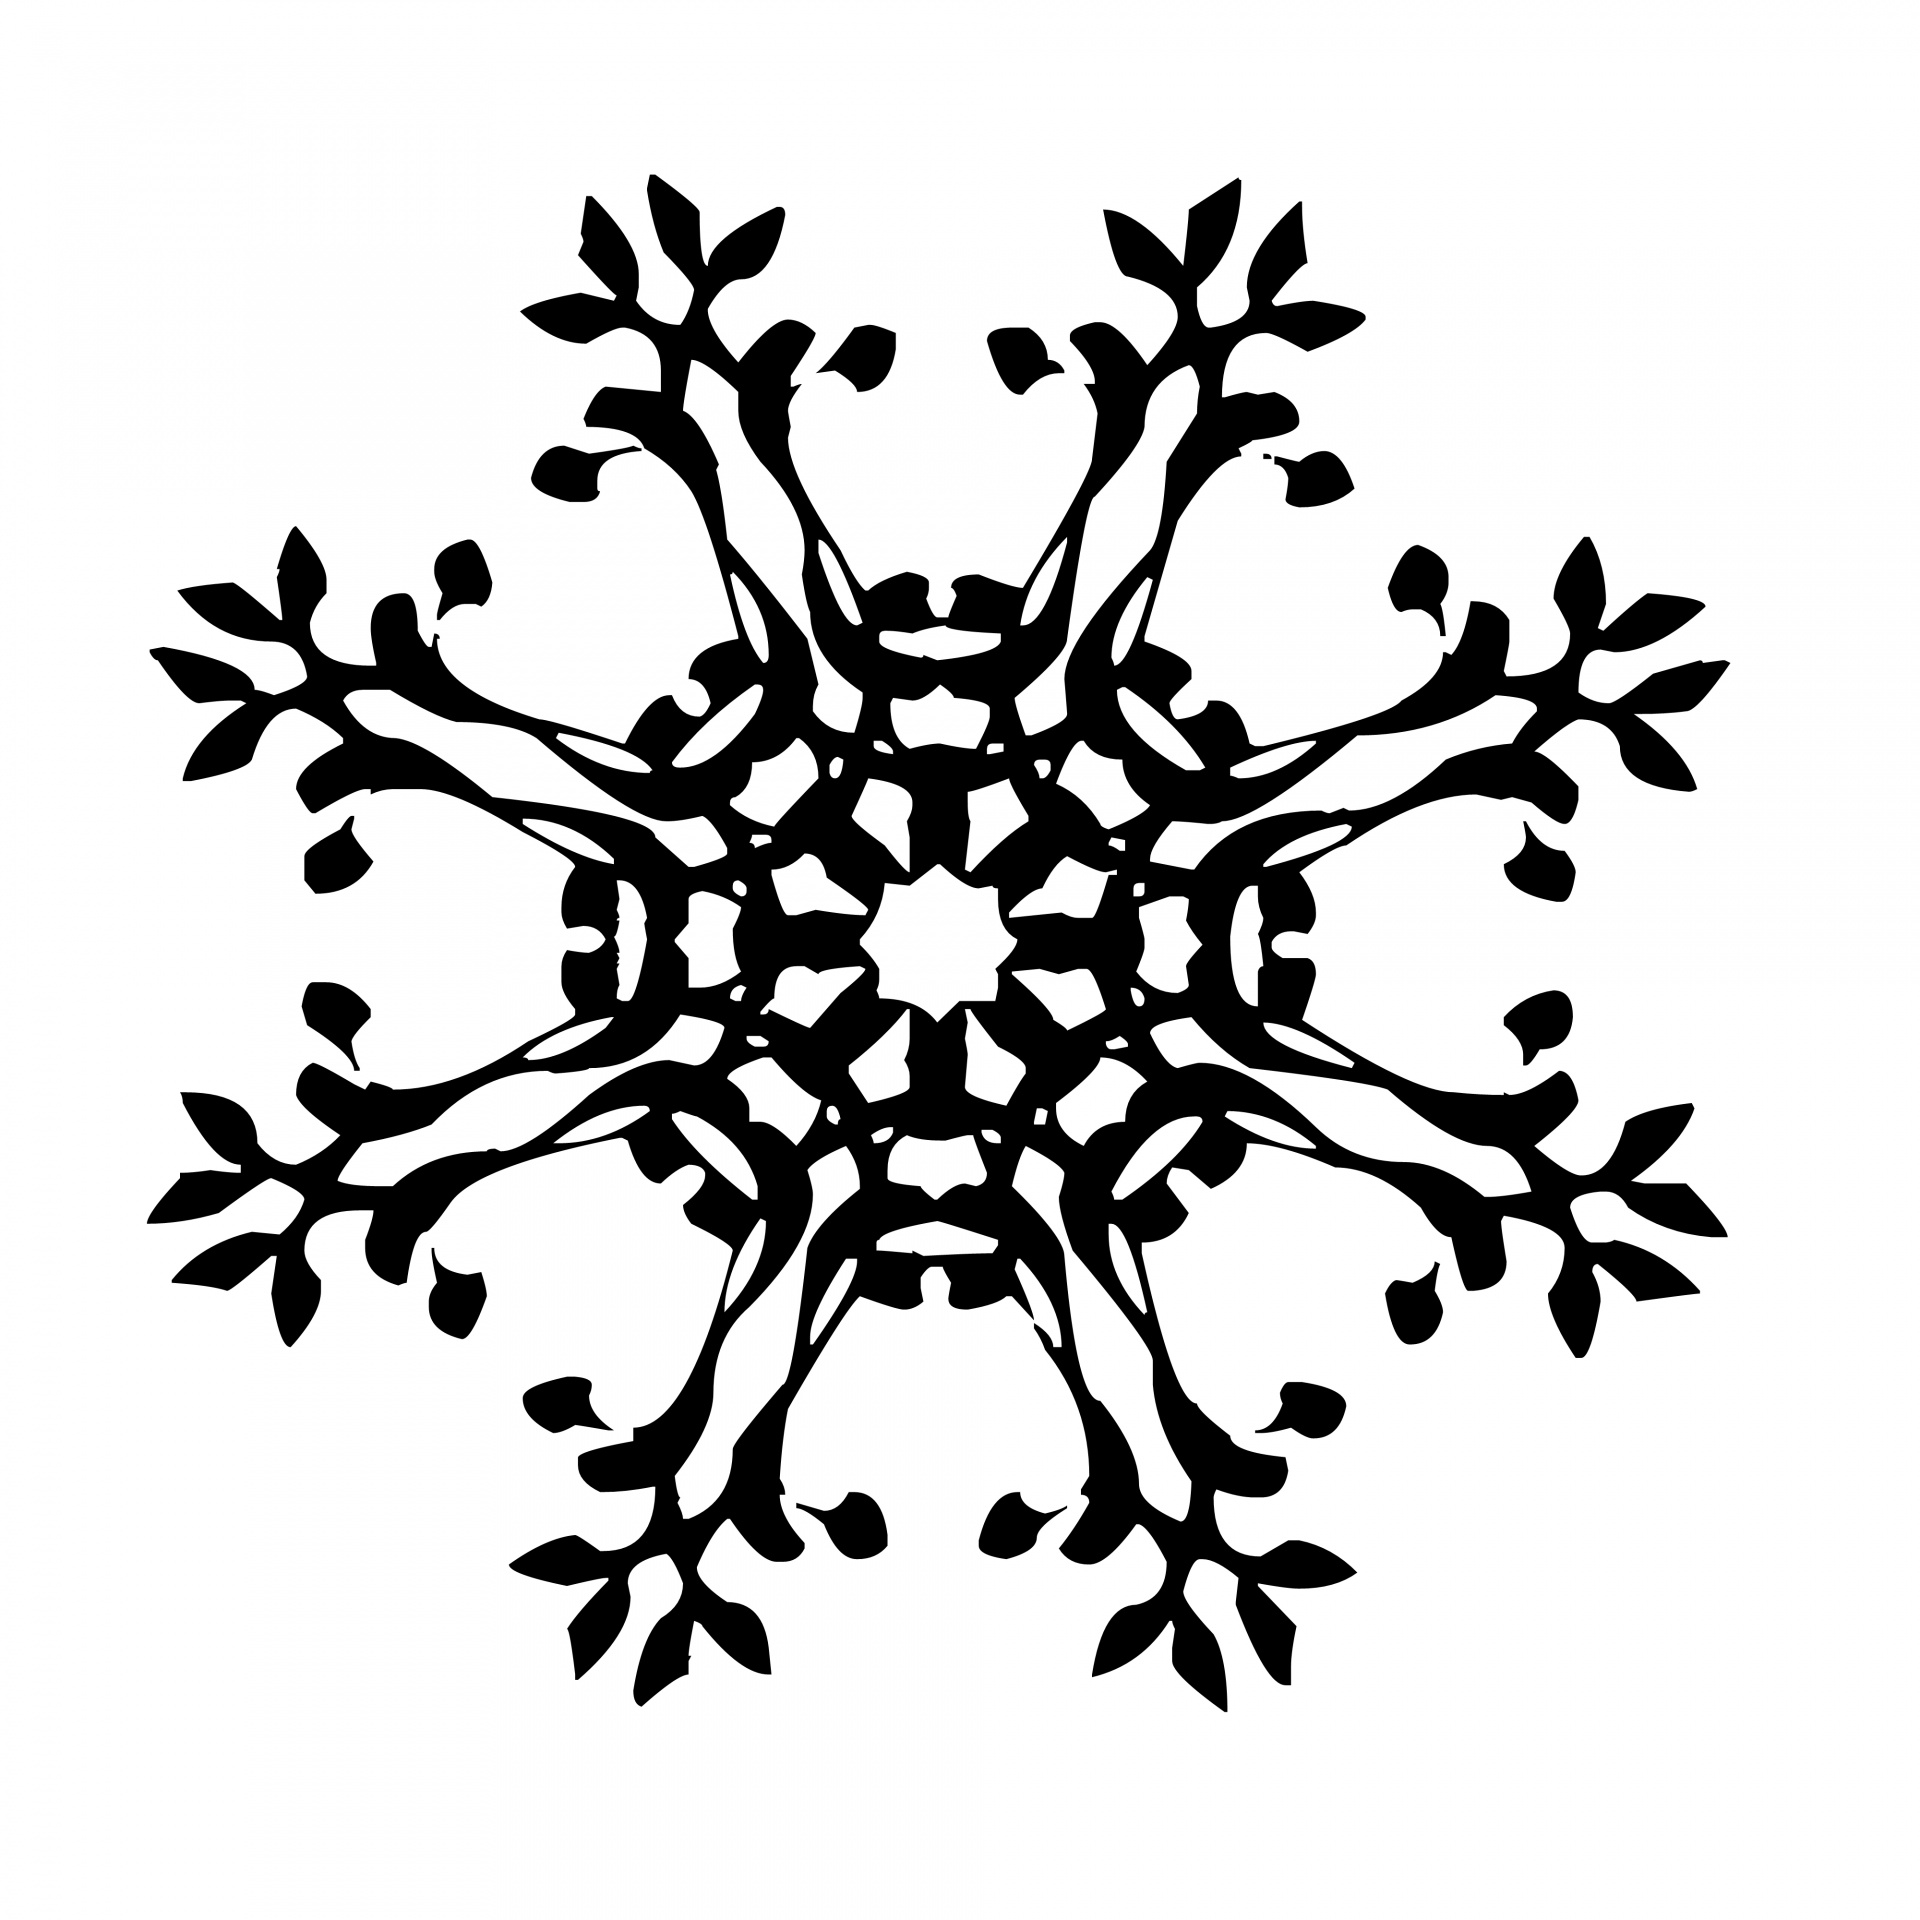 Black Snowflake Free Stock Photo